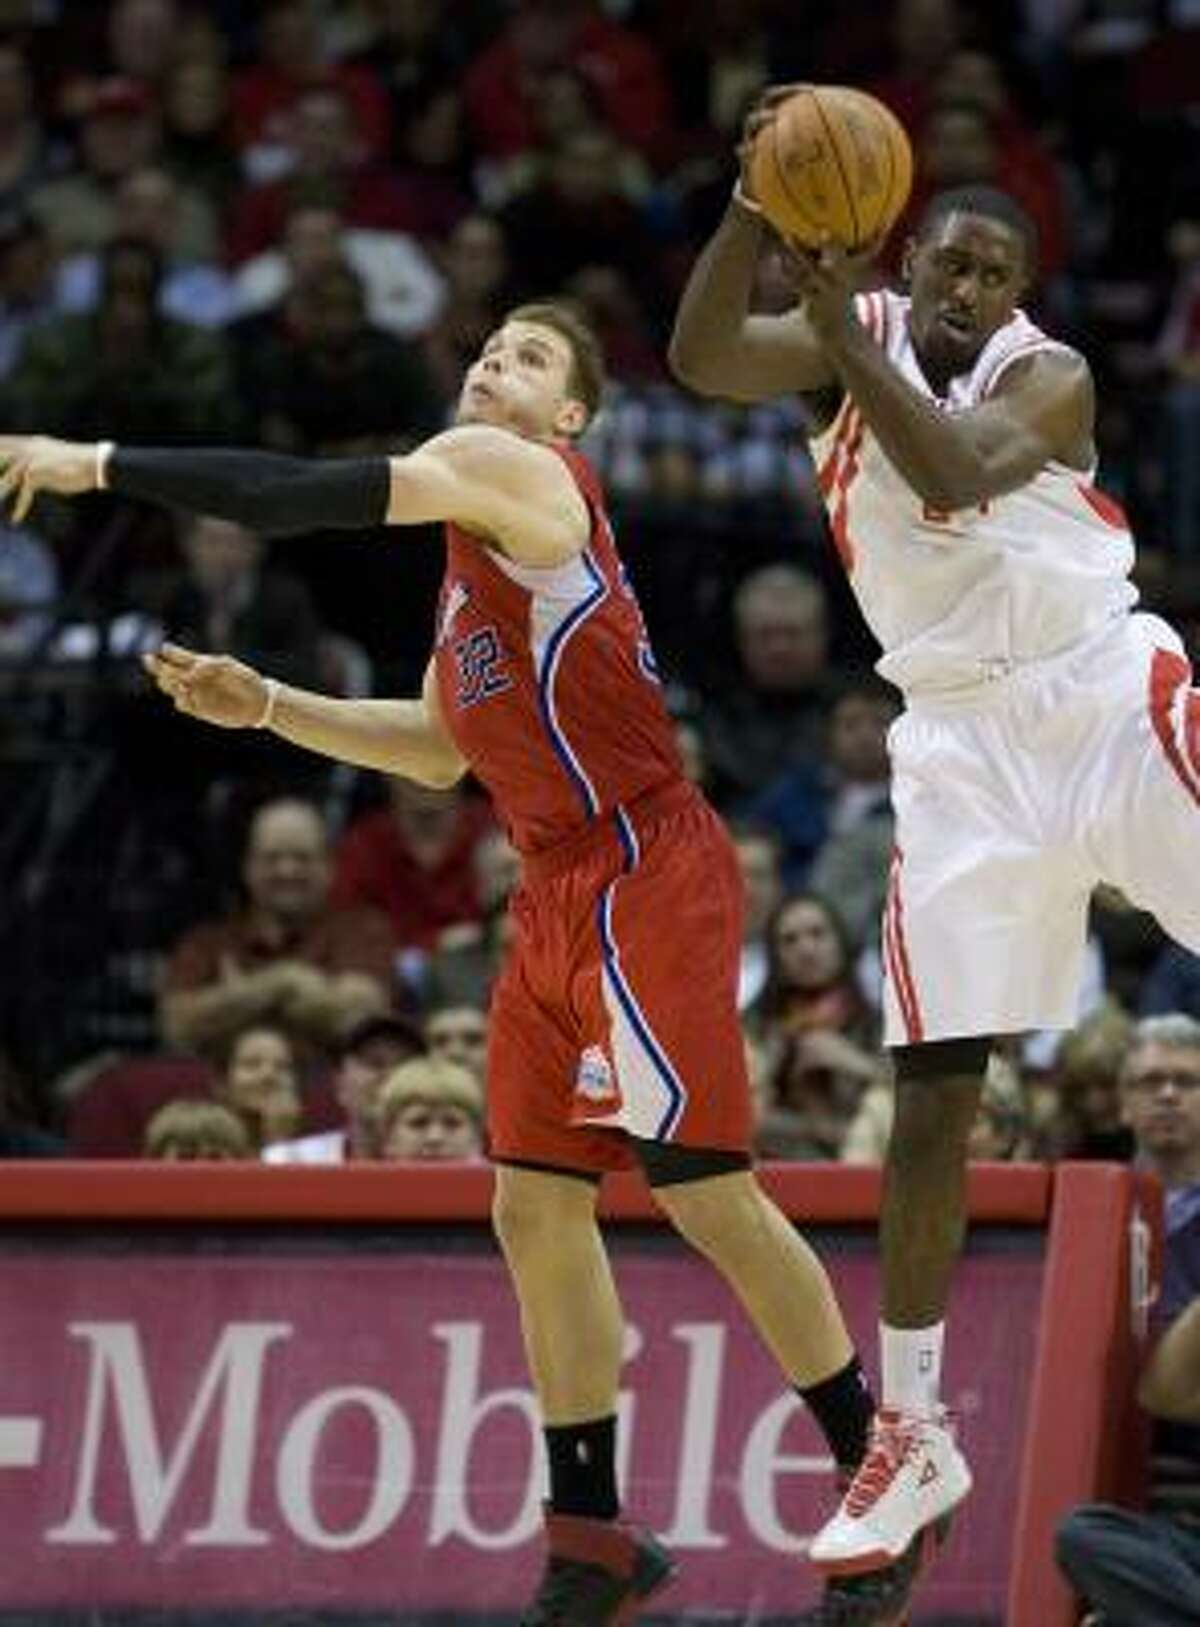 Clippers forward Blake Griffin (32) goes for a steal and misses as Rocekts forward Patrick Patterson (54) pulls in the ball.